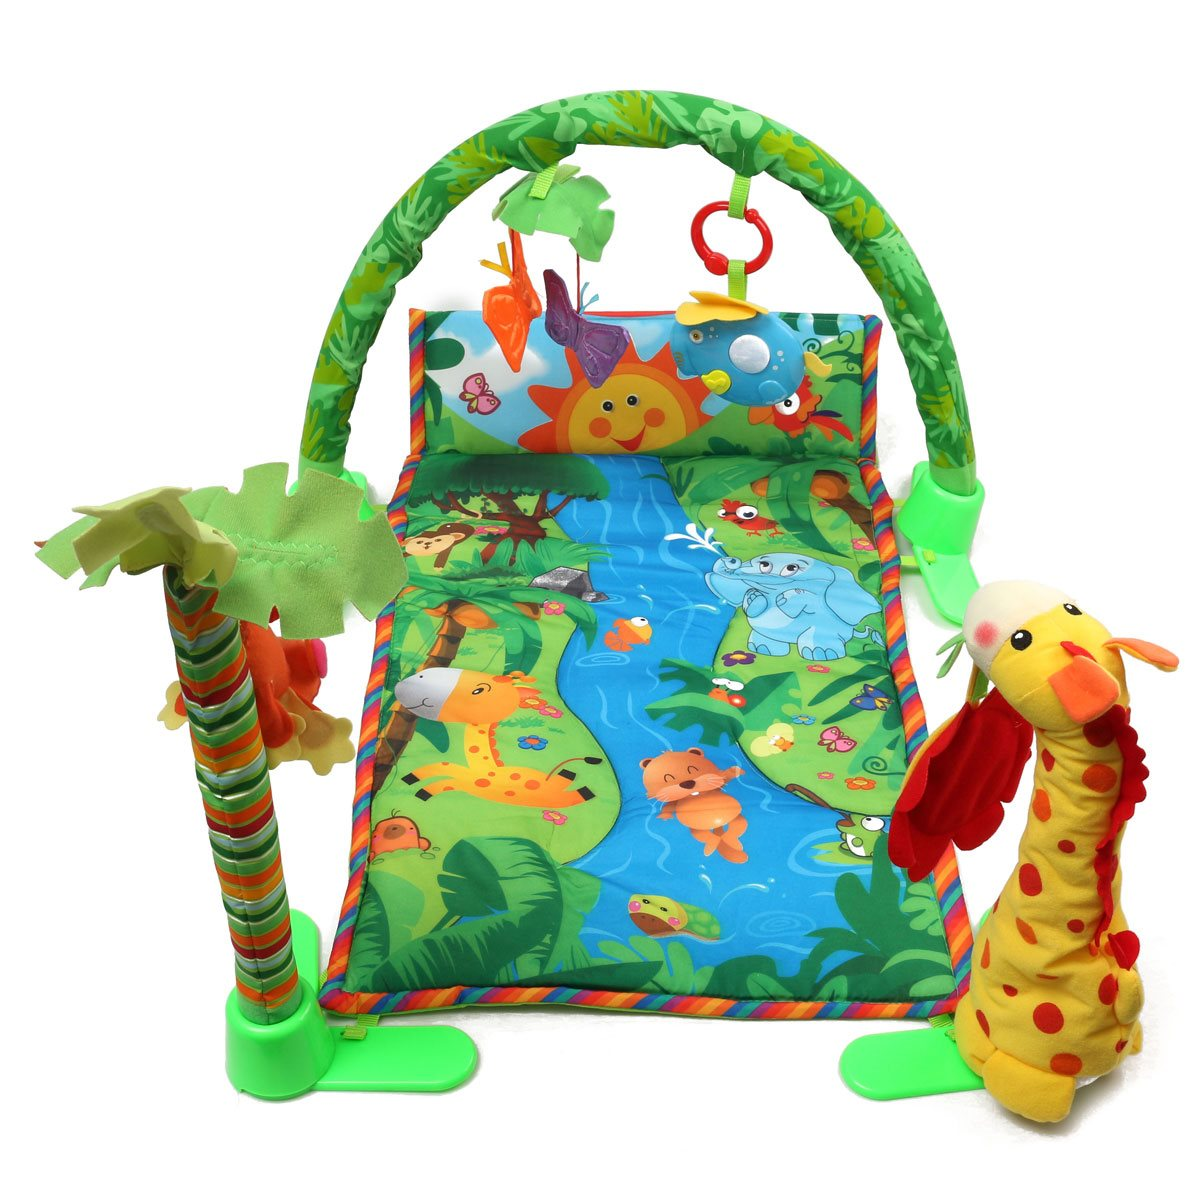 aliexpresscom  buy baby infant play mat rainforest musical gym  - aliexpresscom  buy baby infant play mat rainforest musical gym melodieslights deluxe activity tummy time floor crawl playmat toy game blanket from